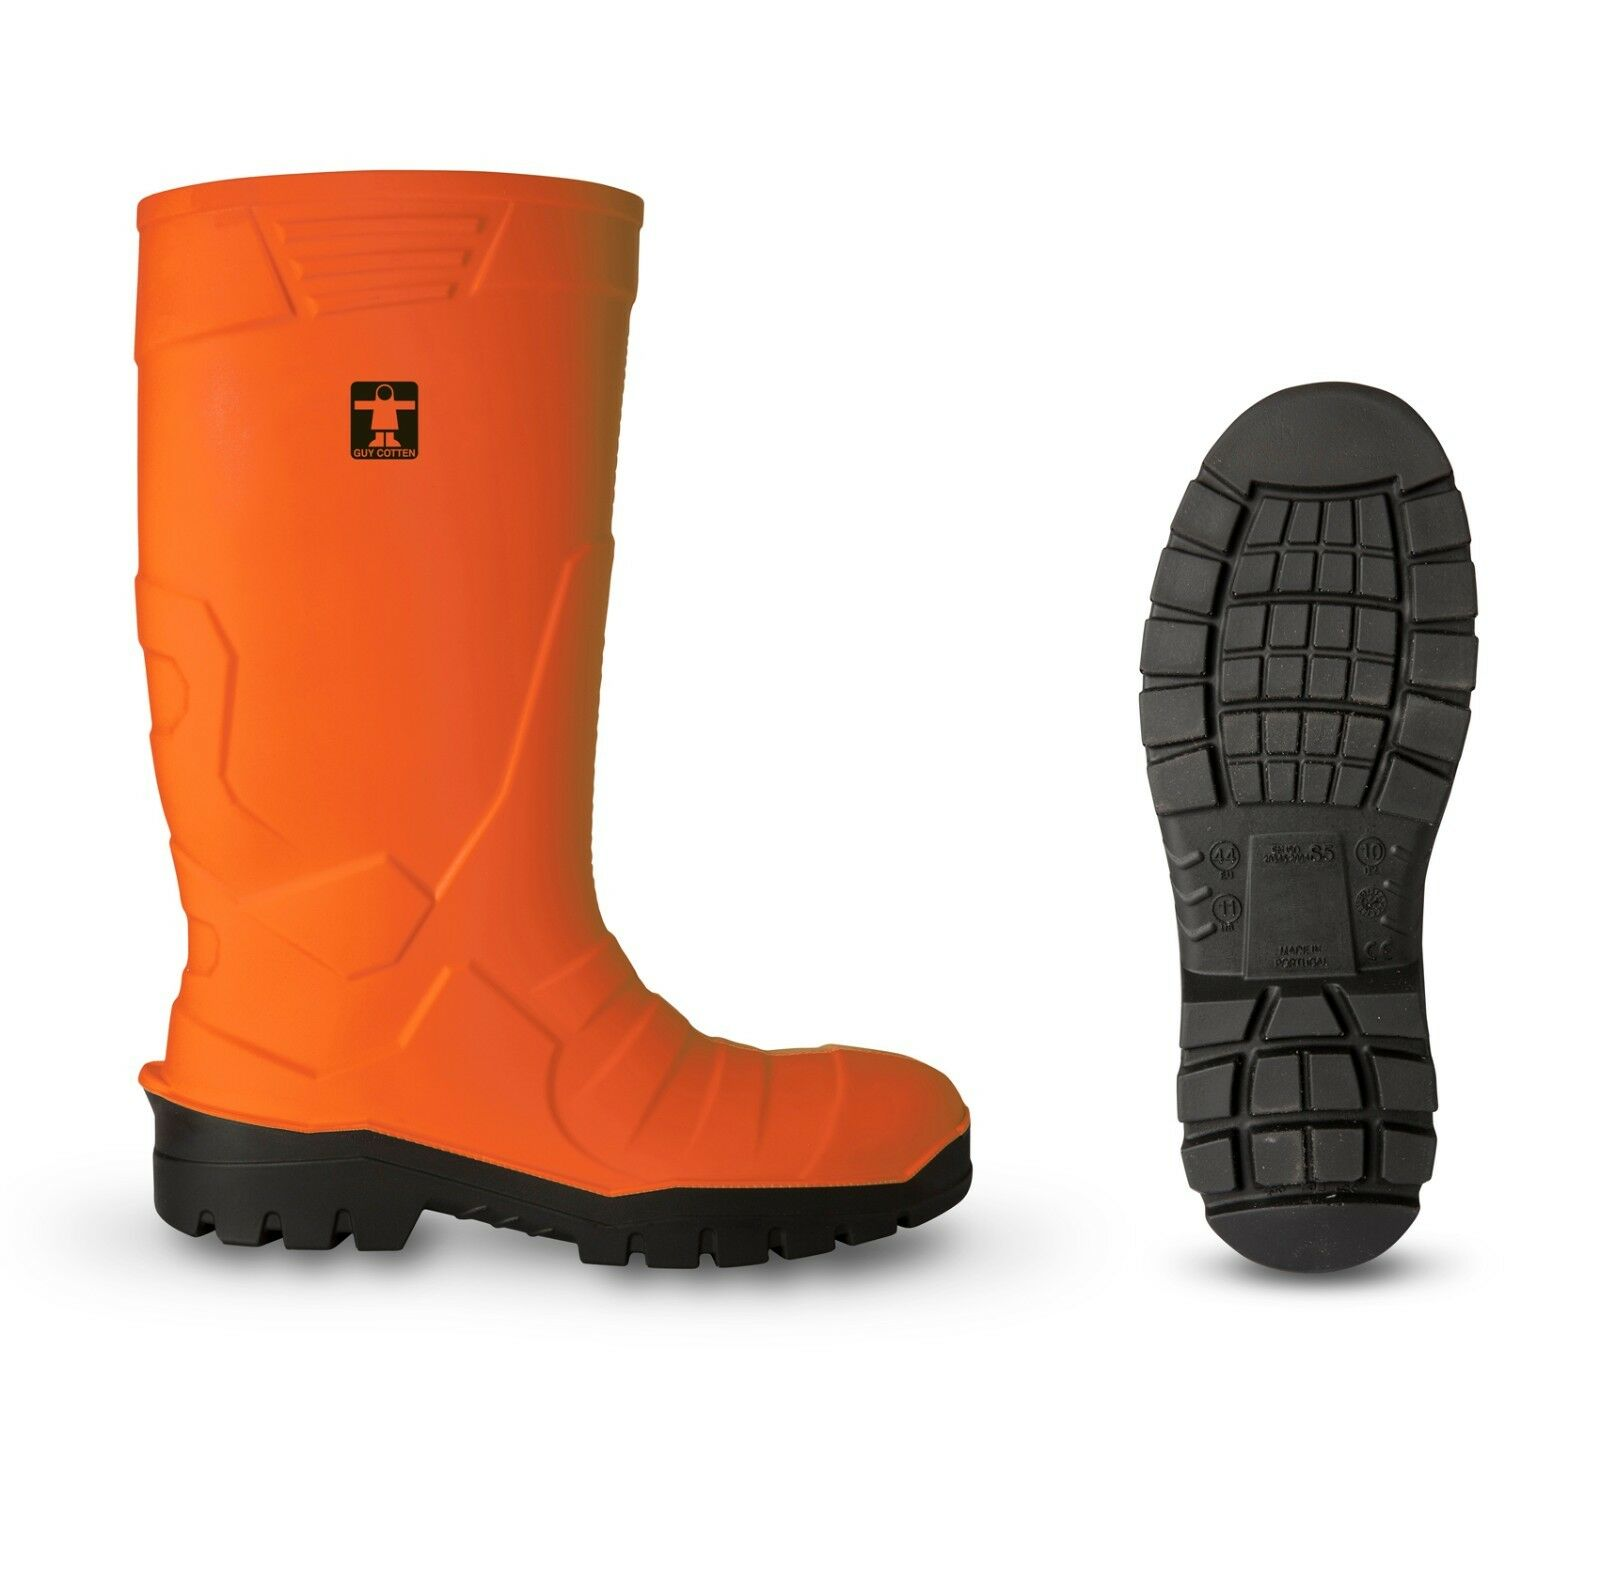 GUY COTTEN FISHING GC ULTRALITE Stiefel / WELLINGTON / FISHING COTTEN / CLEANING & PROCESSING 26e993